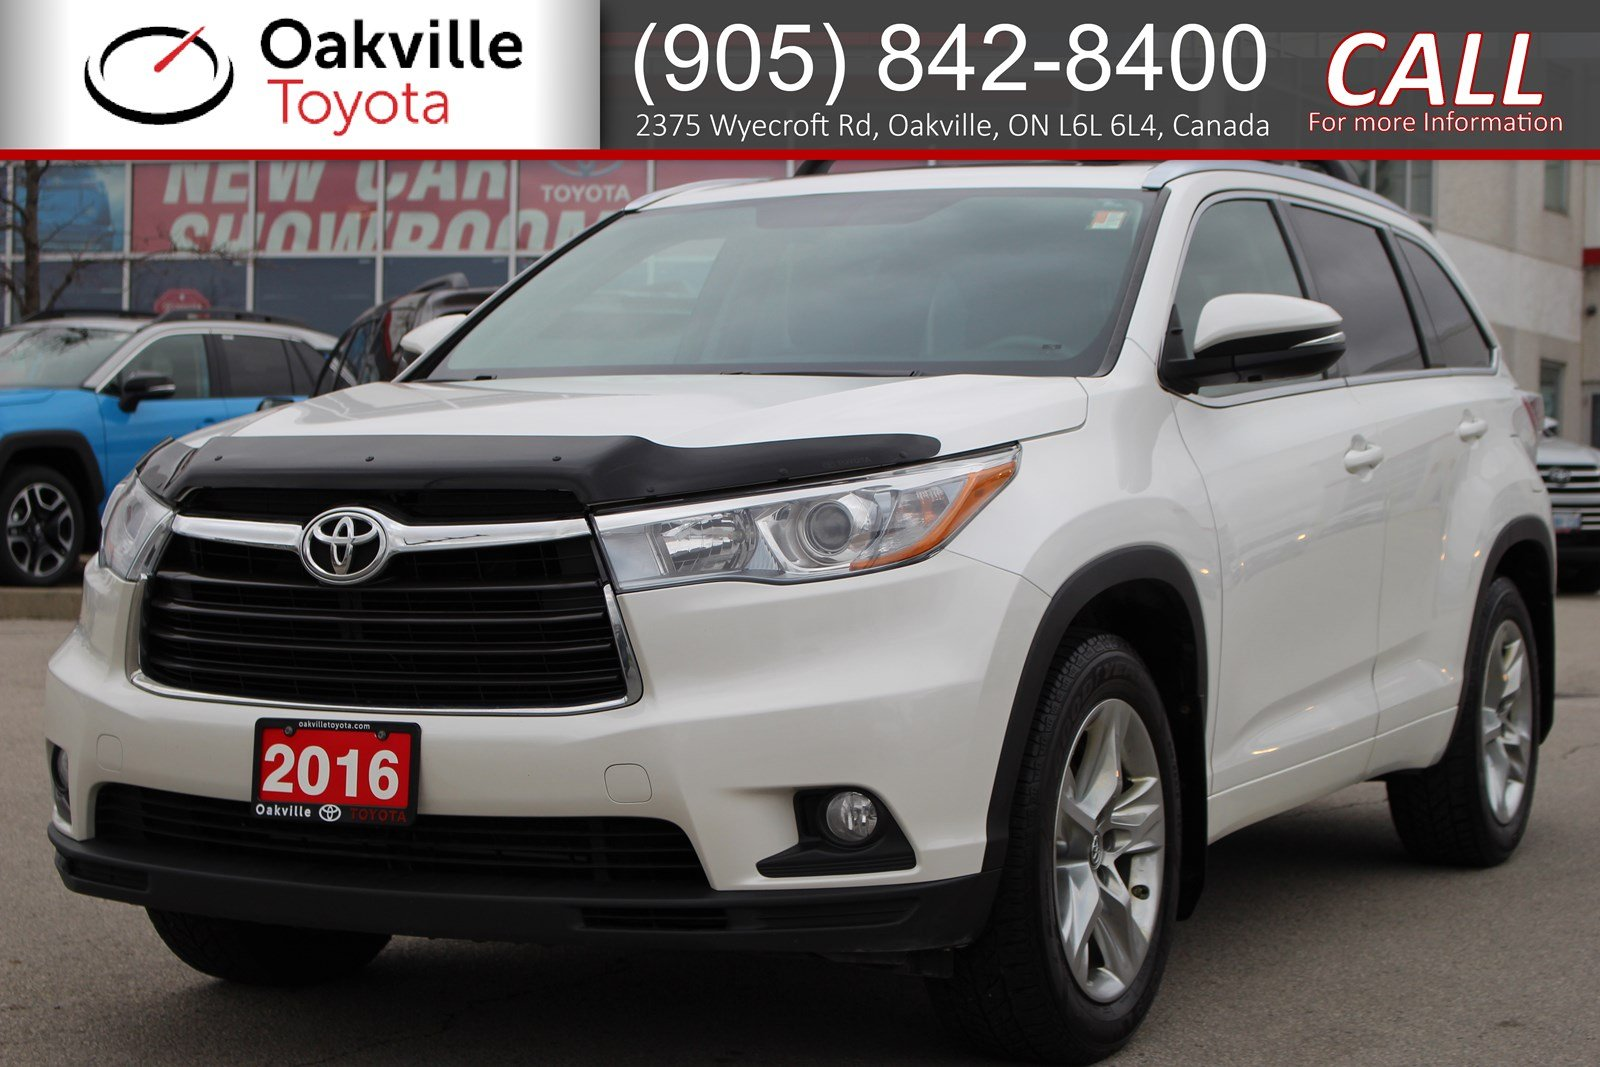 Pre-Owned 2016 Toyota Highlander Limited AWD with Hood Deflector, Clean Carfax, and Single Owner